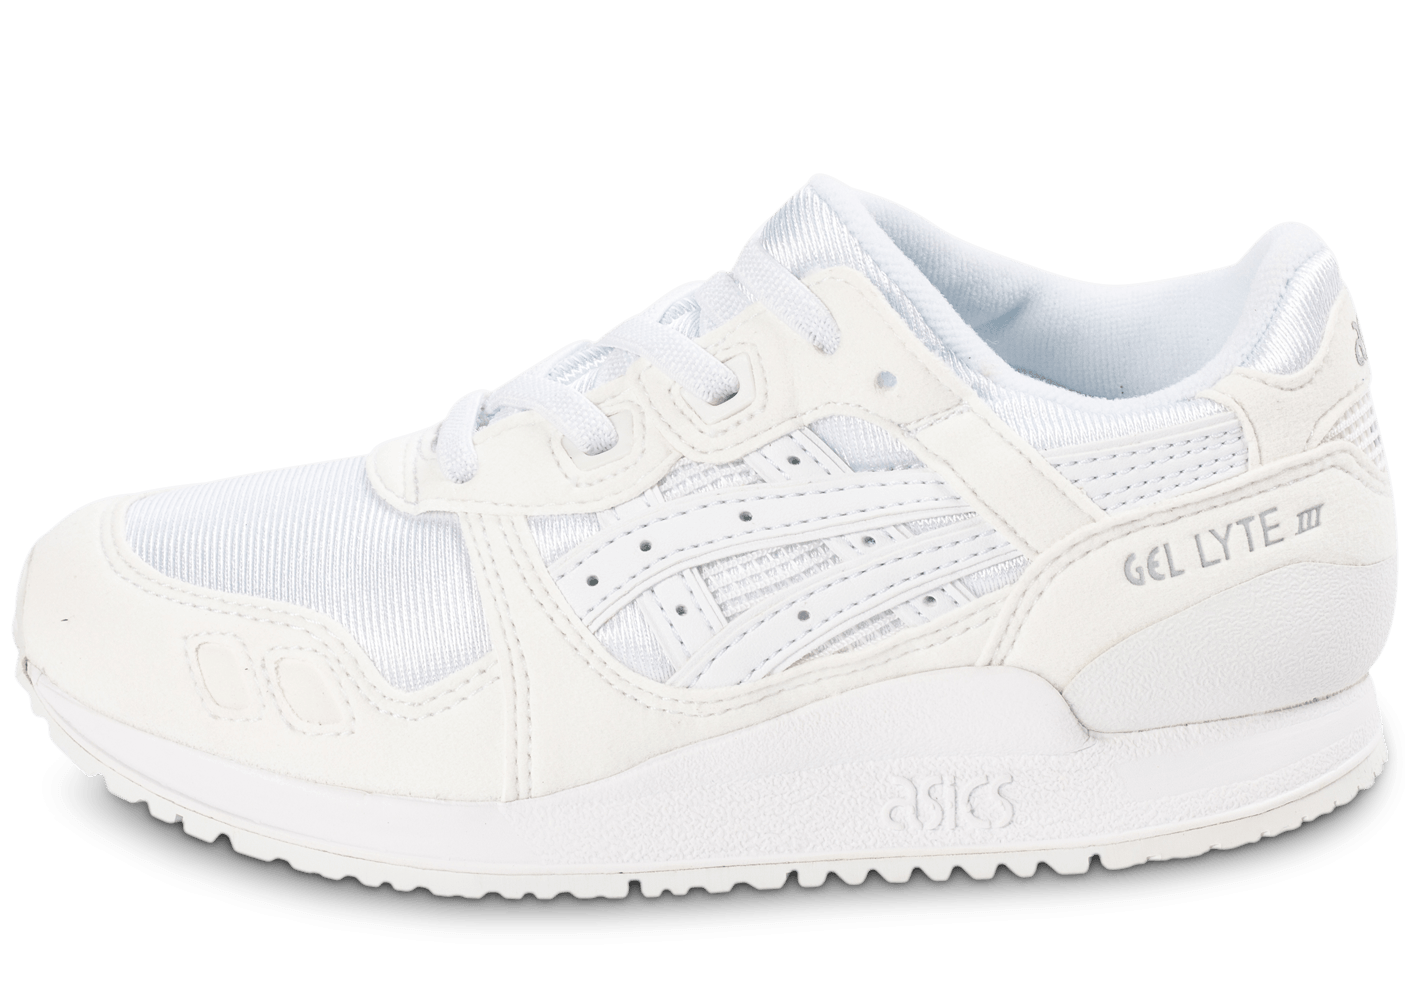 Chaussures Asics blanches enfant J9xHY9